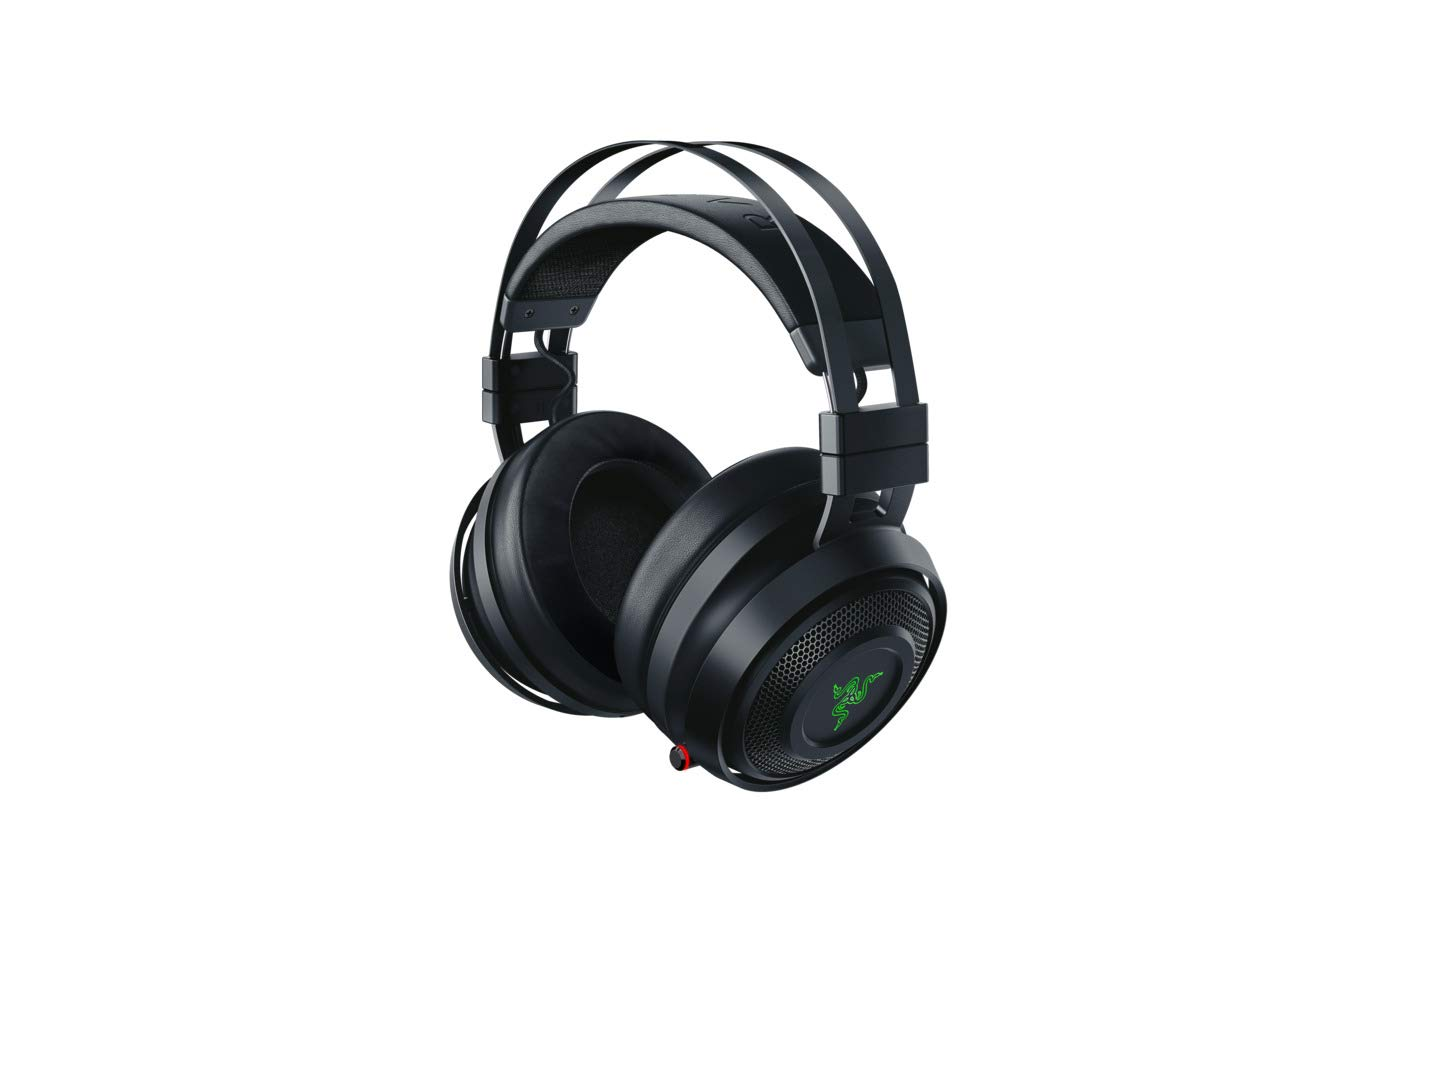 Razer Nari Wireless: THX Spatial Audio - Cooling Gel-Infused Cushions - 2.4GHz Wireless Audio - Mic with Game/Chat Balance - Gaming Headset Works for PC, PS4, Xbox One, Switch & Mobile Devices